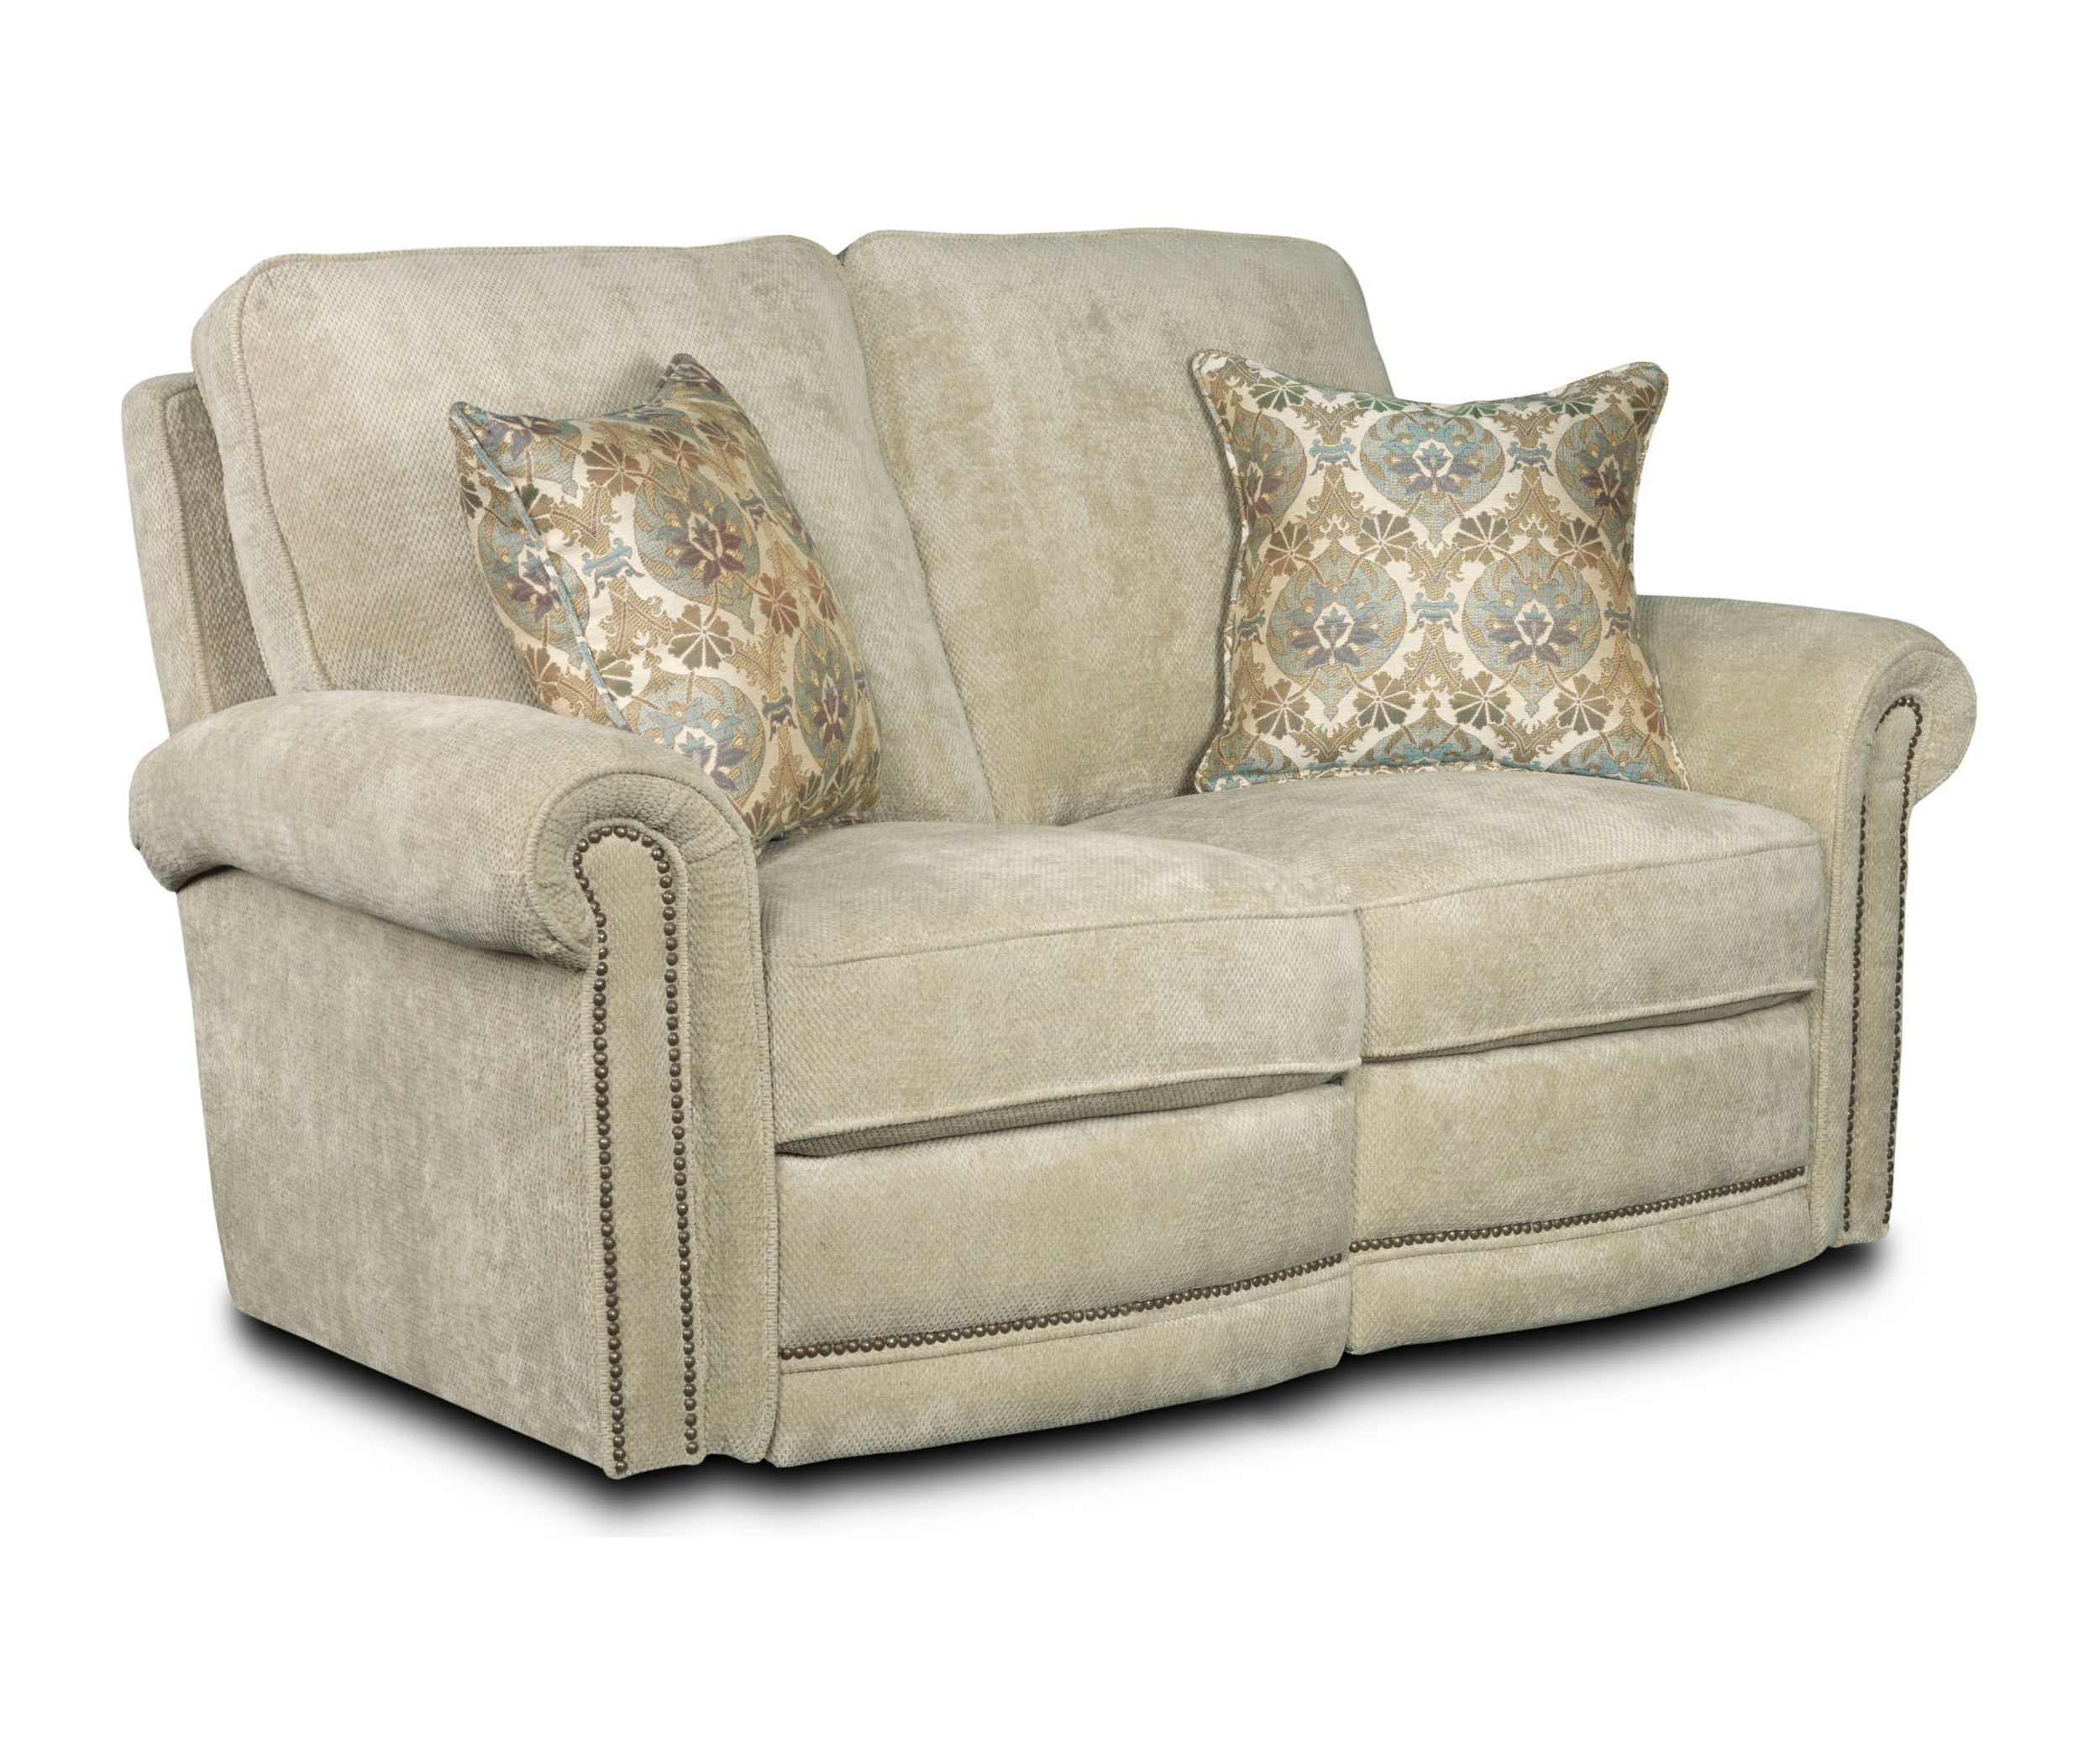 Awesome Enjoy The Customizable Jasmine Reclining Loveseat With A Dailytribune Chair Design For Home Dailytribuneorg